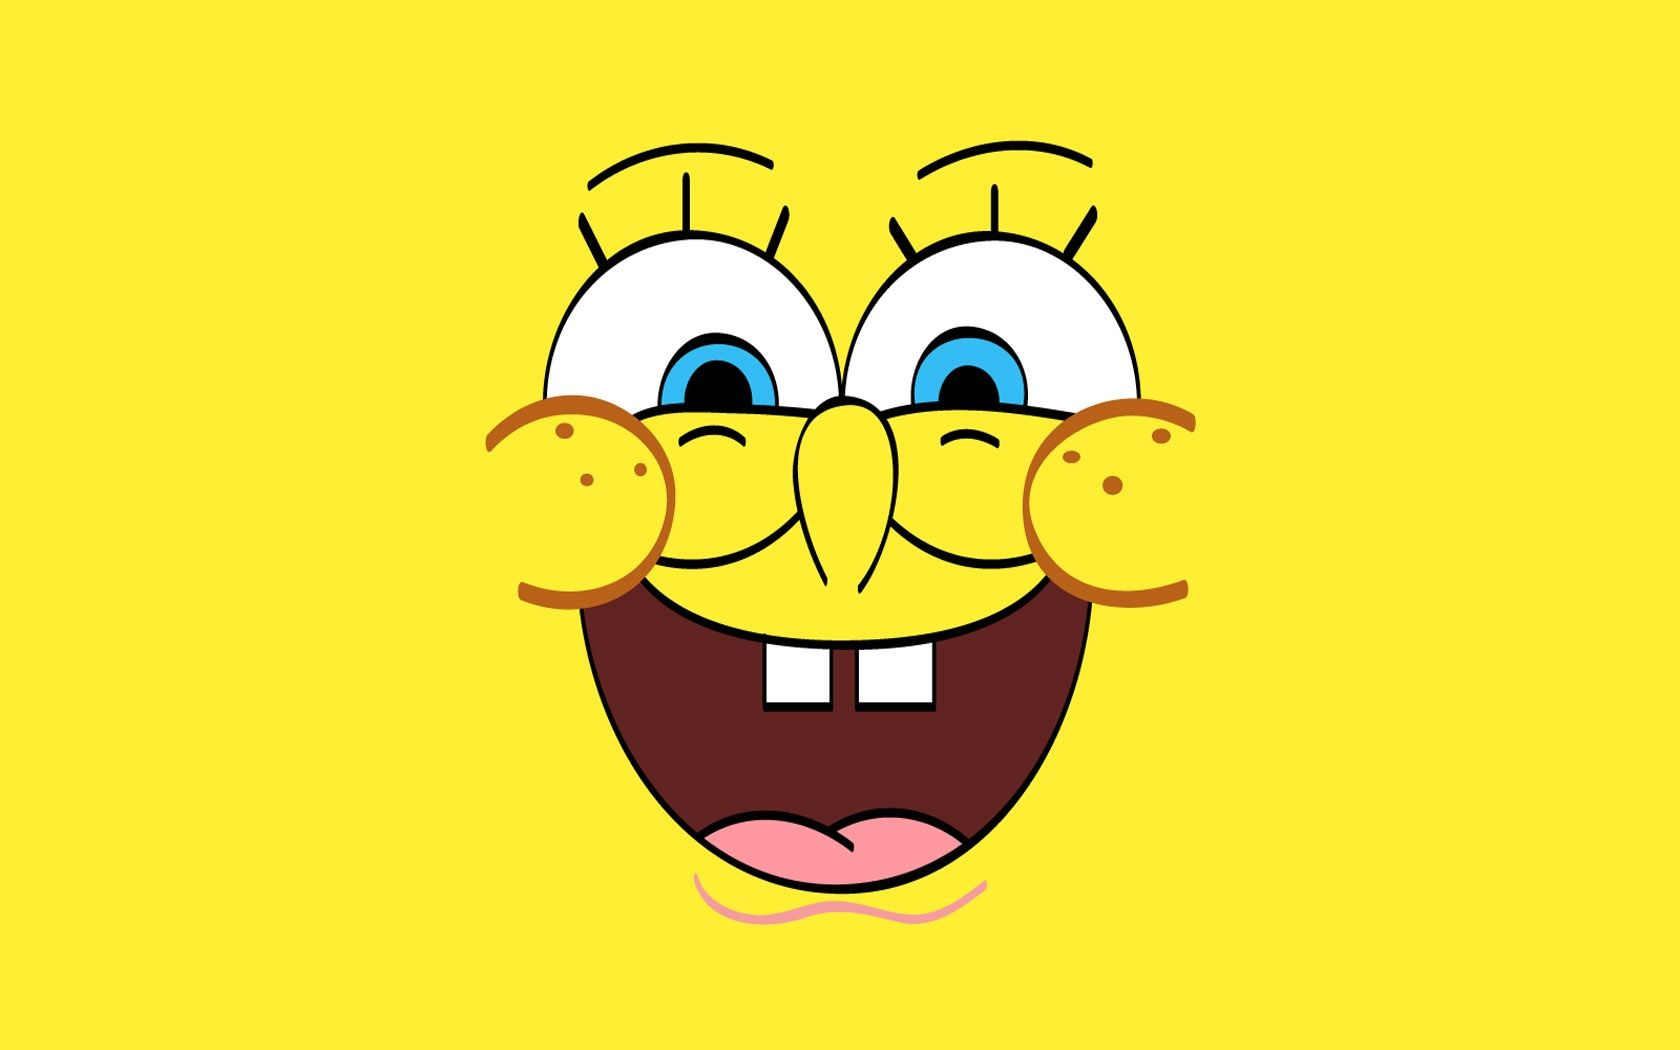 Spongebob Happy Face HD Wallpaper (Dengan gambar